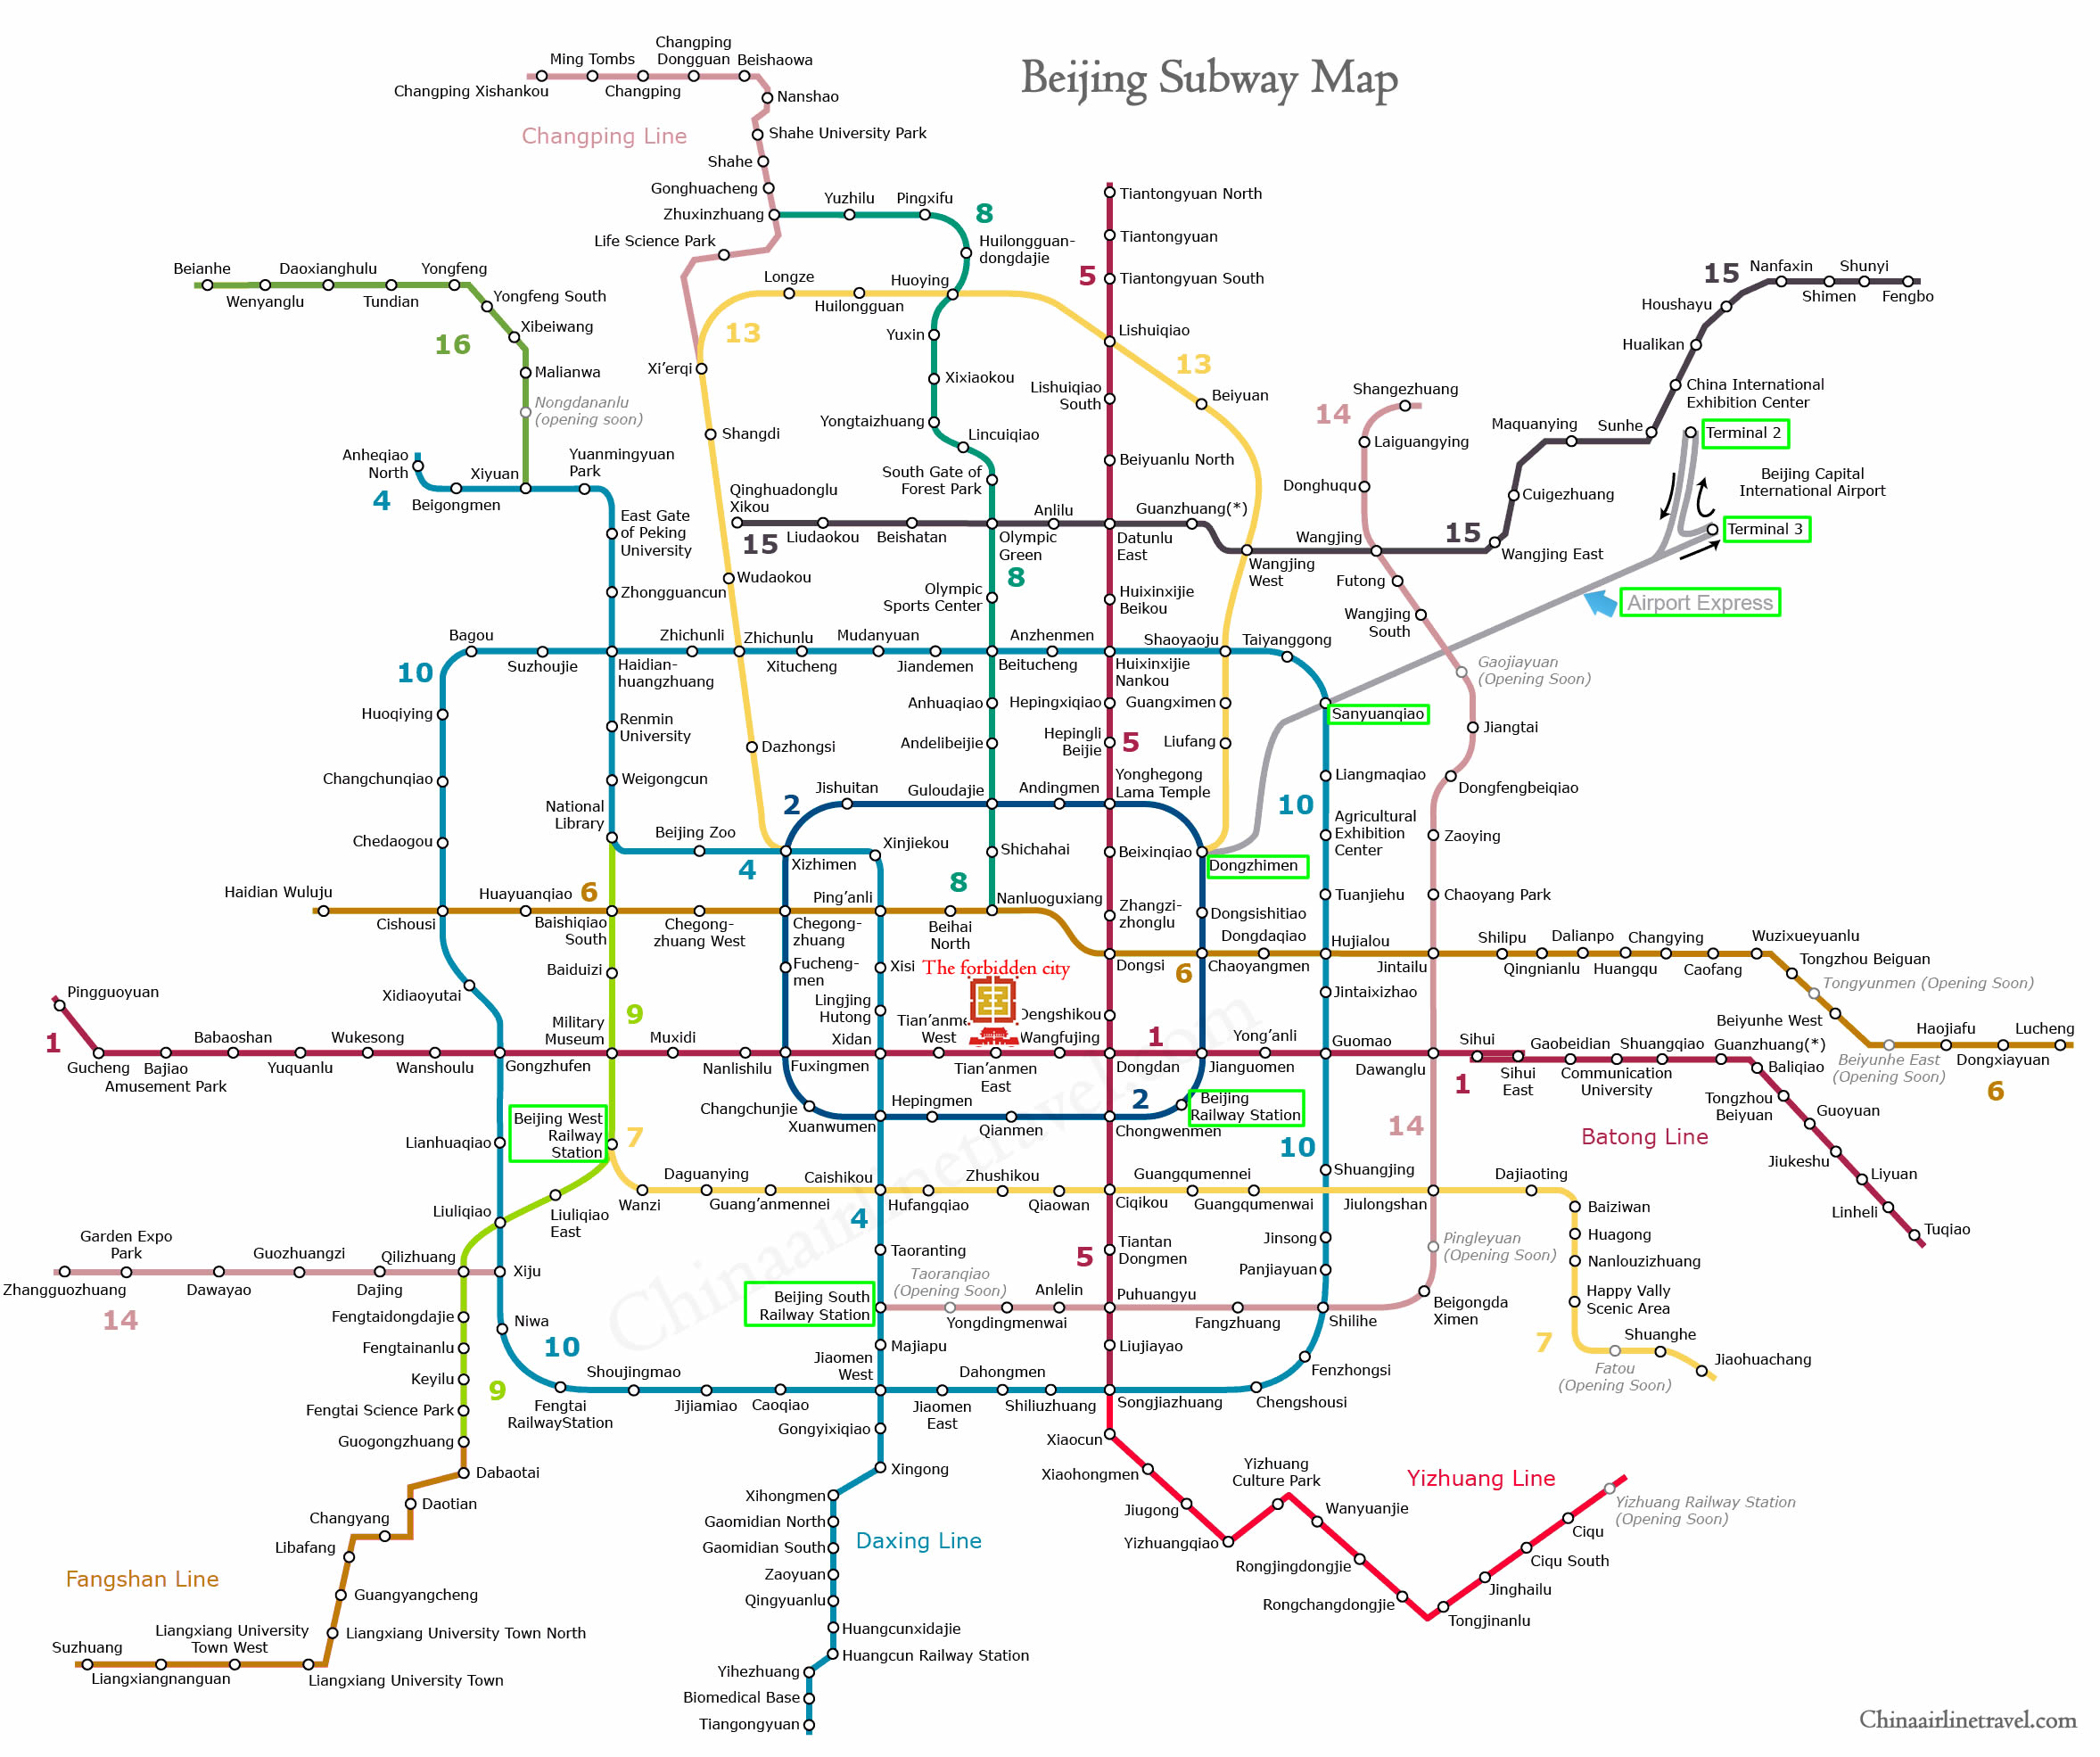 Kunming Metro Map.Beijing Airport Express Railway Map Peking Airport Terminal 2 And